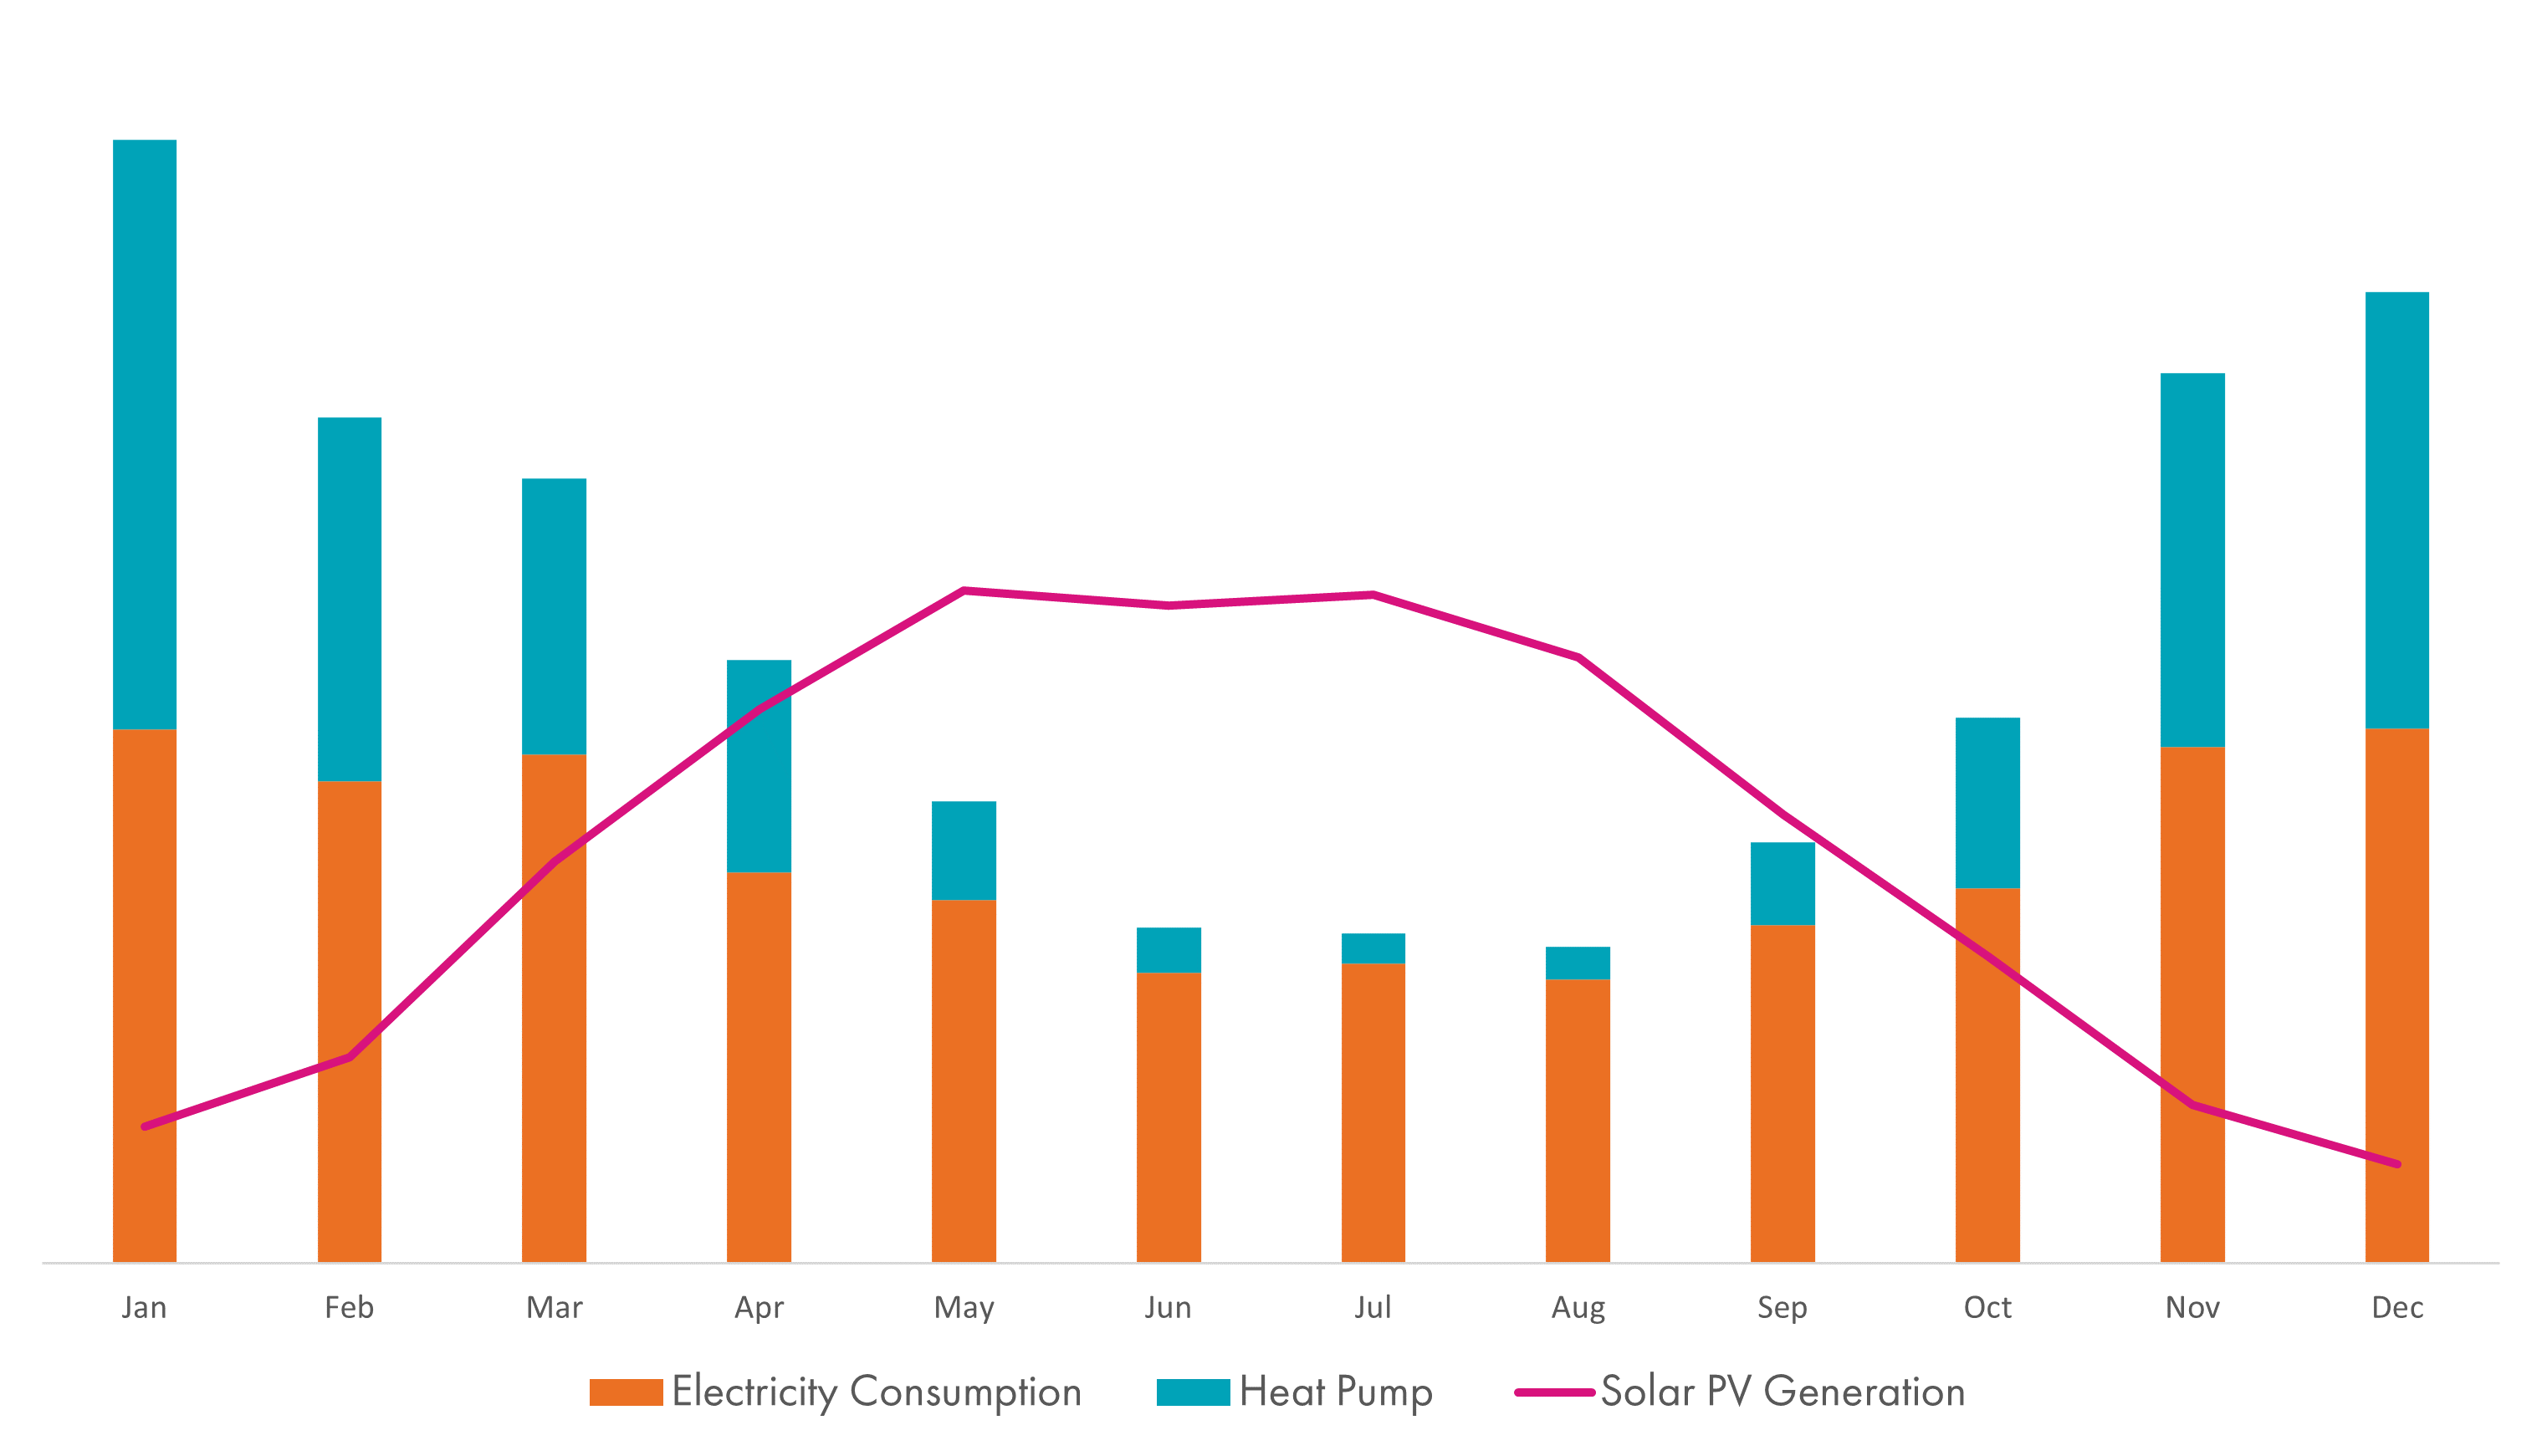 Solar Generation vs Electricity Consumption (with Heat Pump)